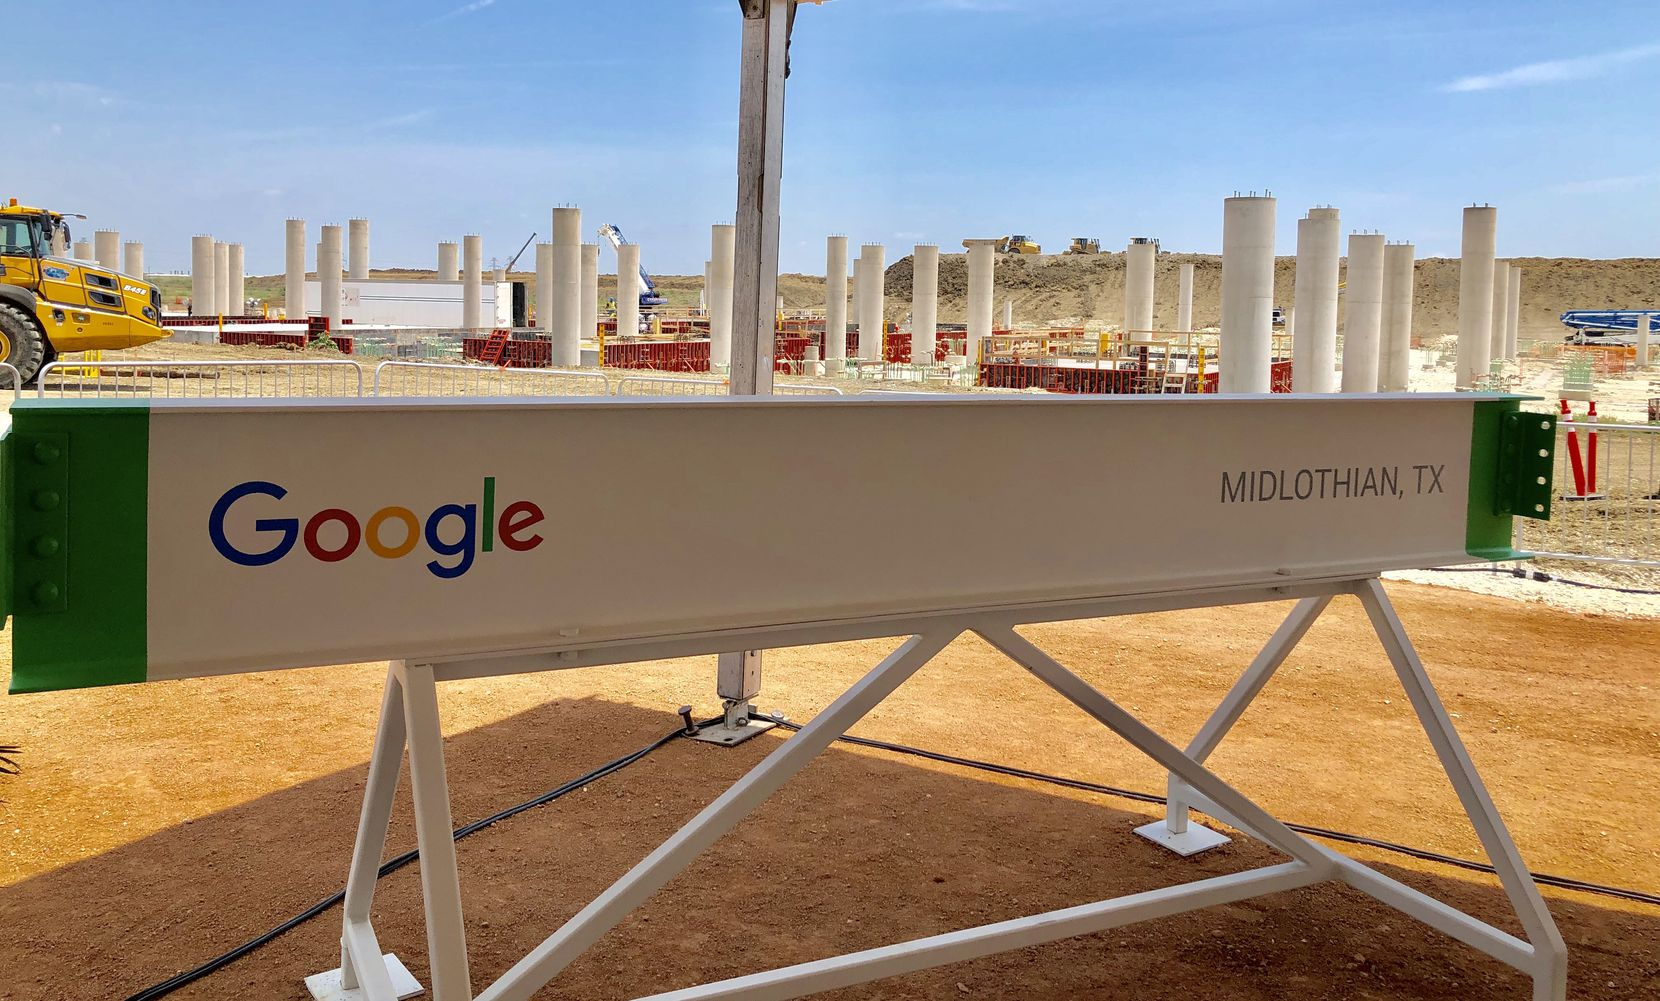 Google executives and Midlothian community leaders gathered Friday to celebrate development of a $600 million data center.